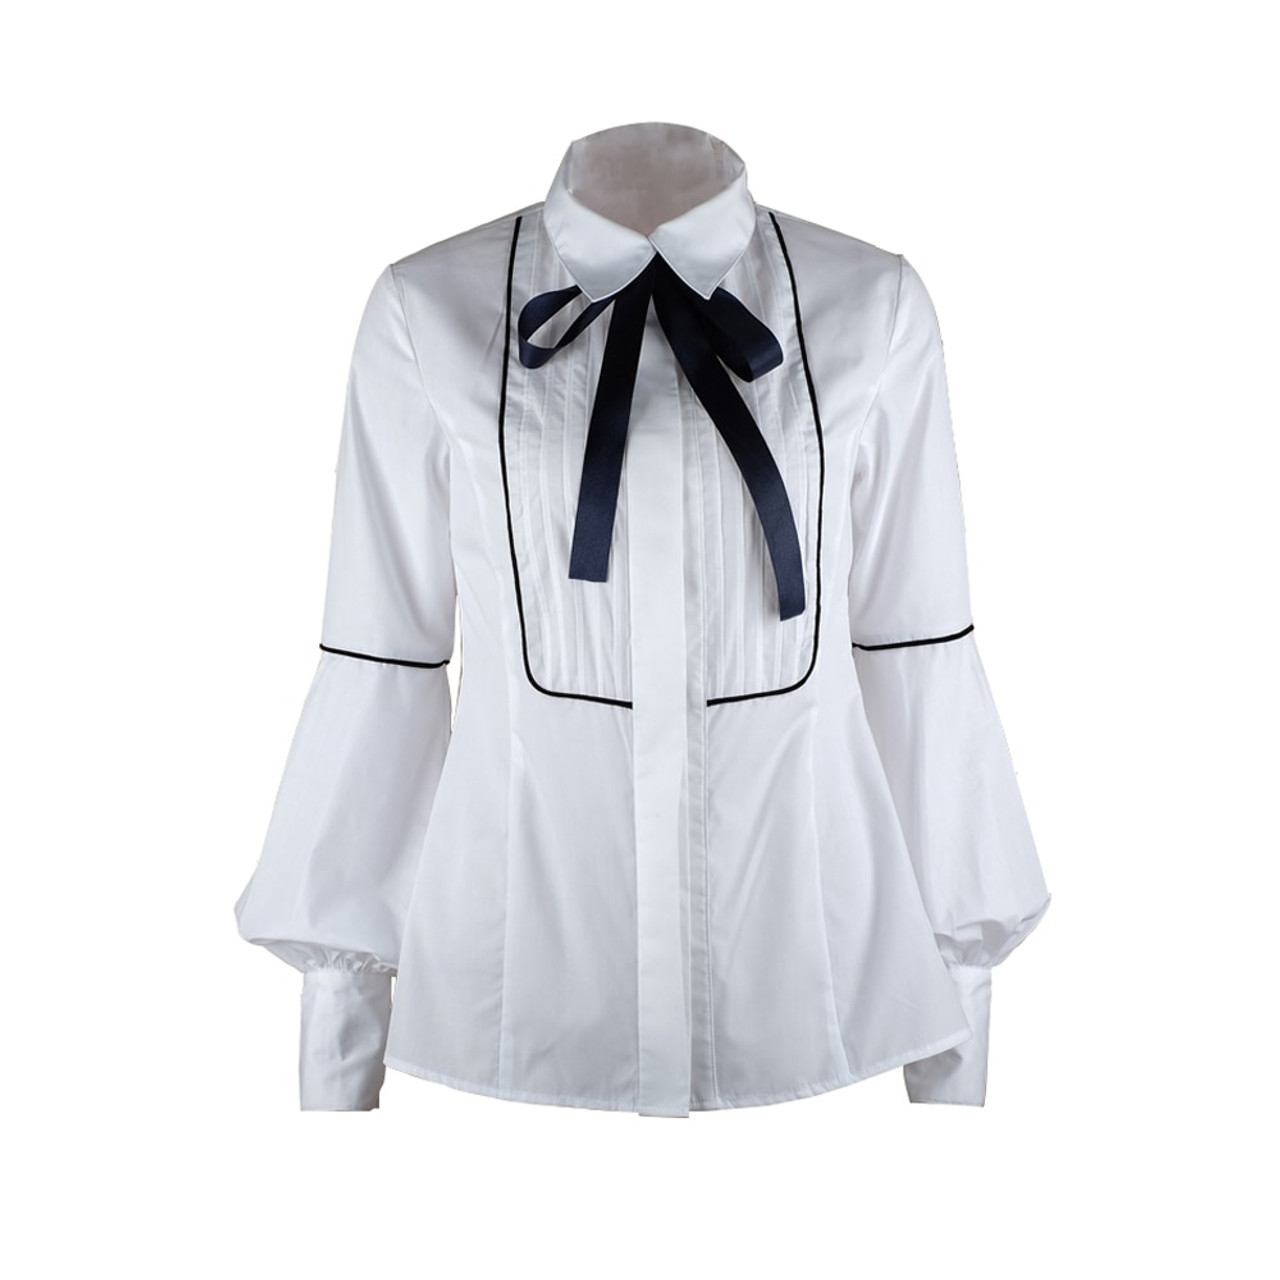 6971f0aa504 ... YVYVLOLO 2018 New Elegant Bow Tie womens tops and blouses White Blue  Tunic Button Down Shirts ...